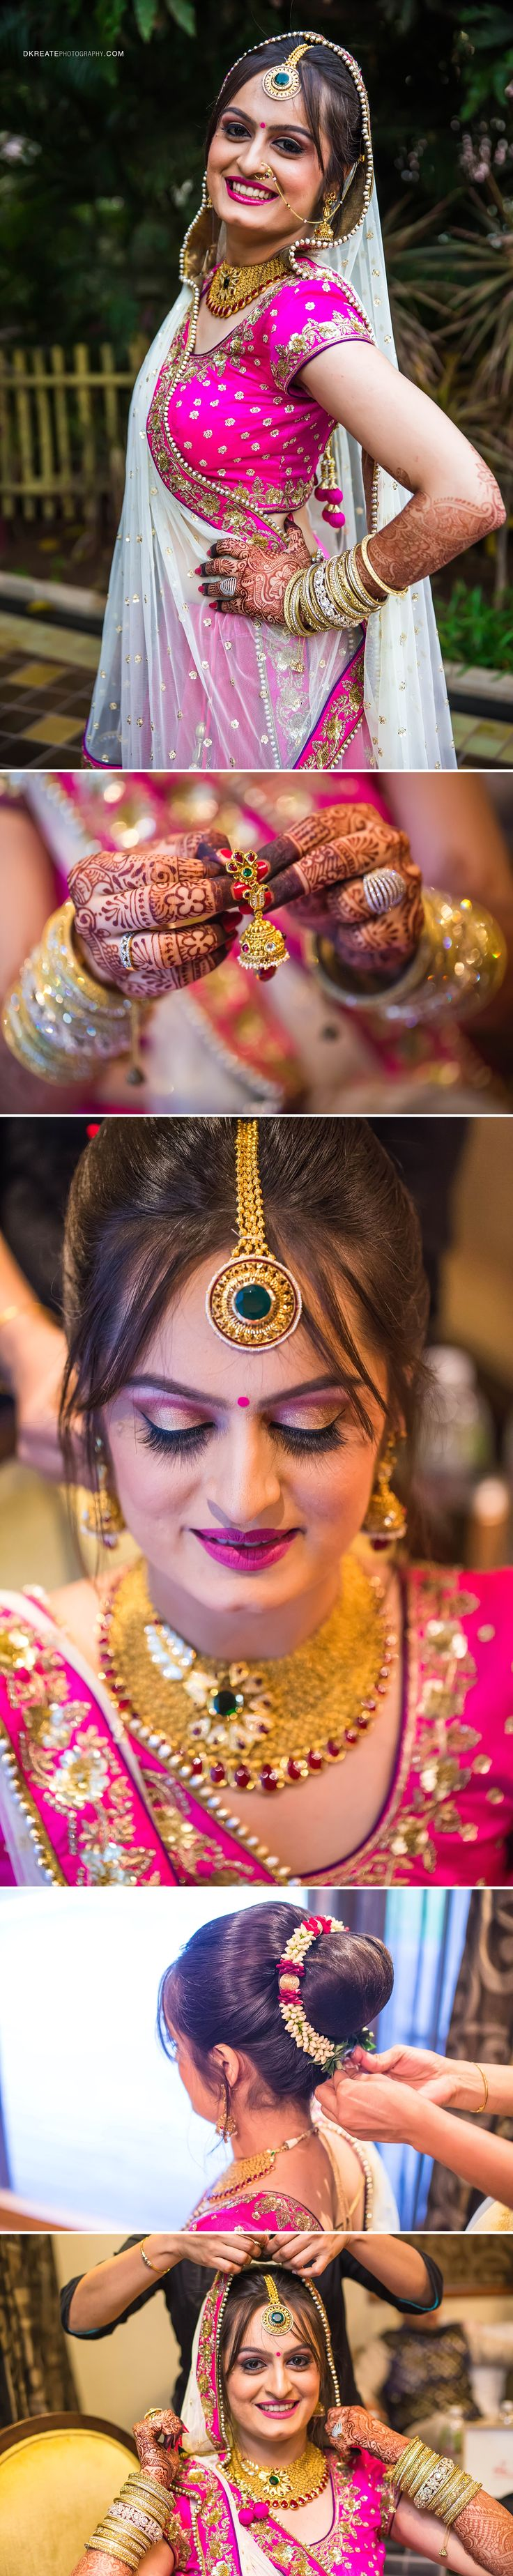 82 best → Indian Wedding Jewelry Inspiration images on Pinterest